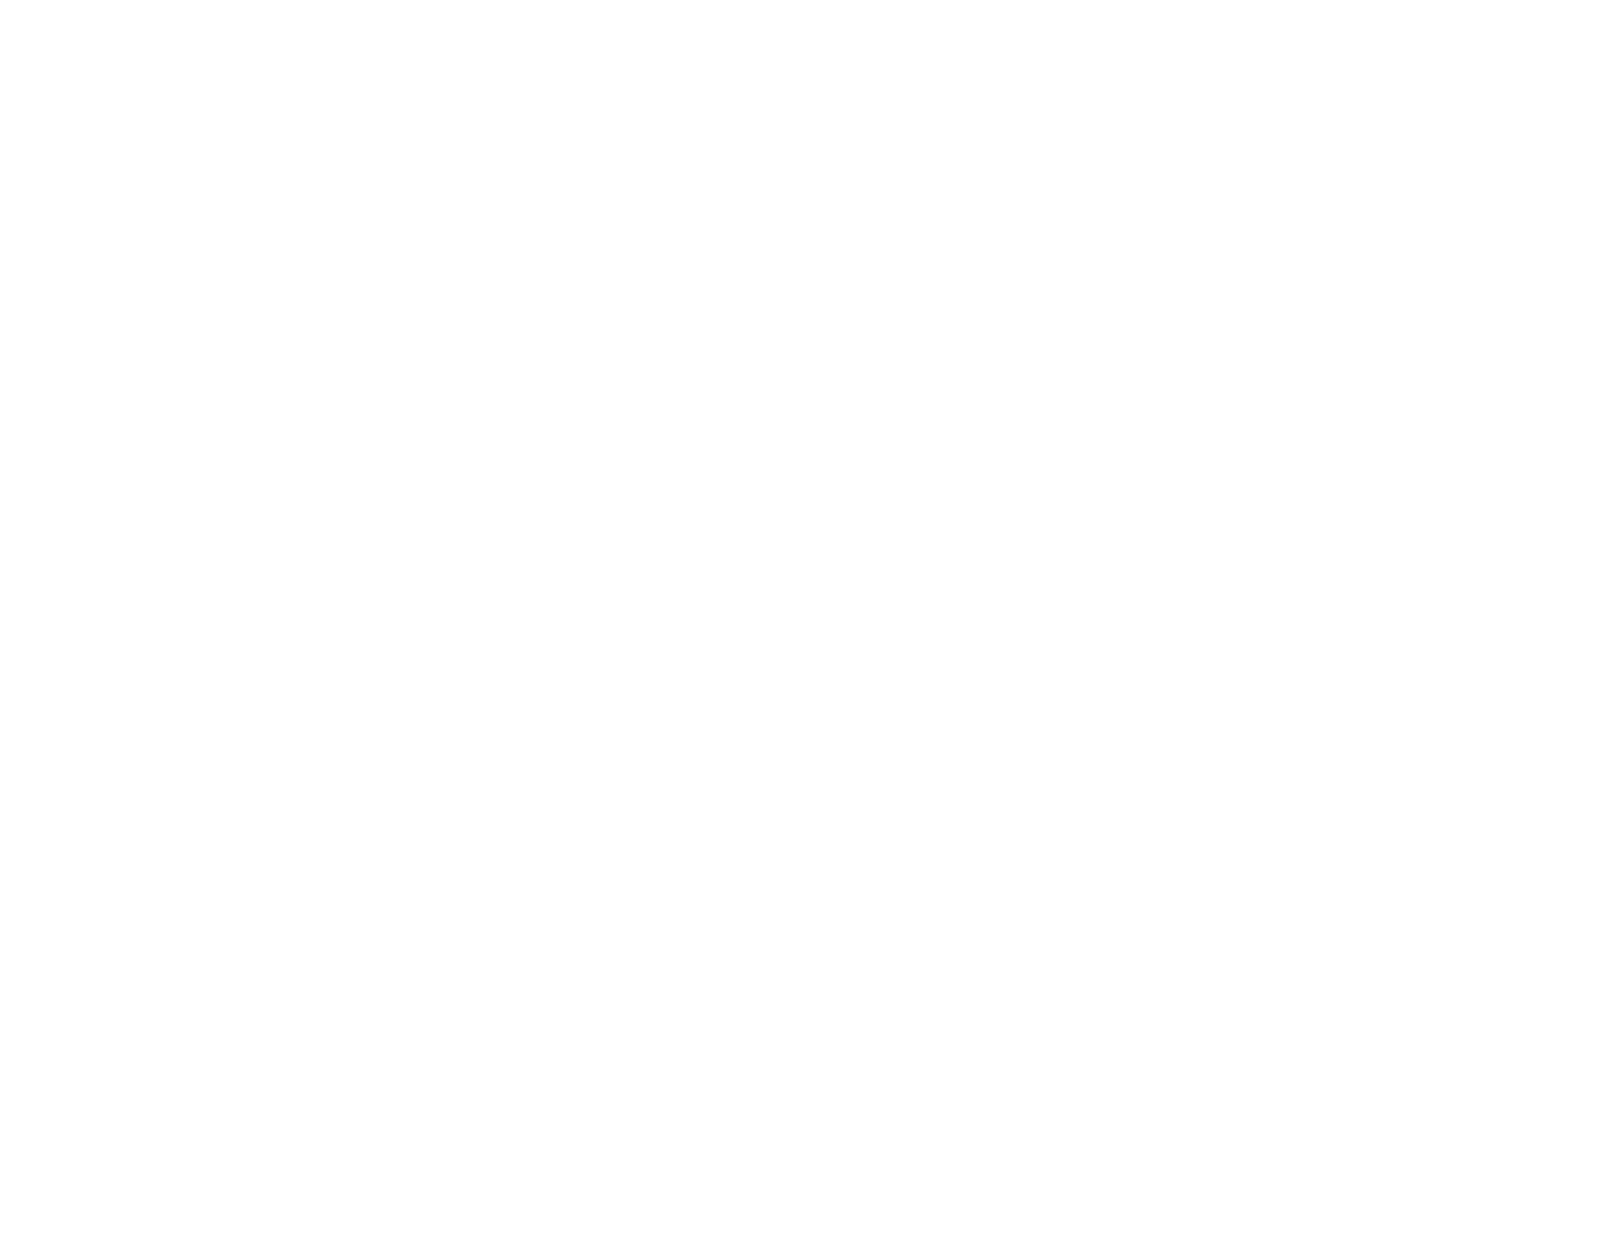 Credence Pictures logo